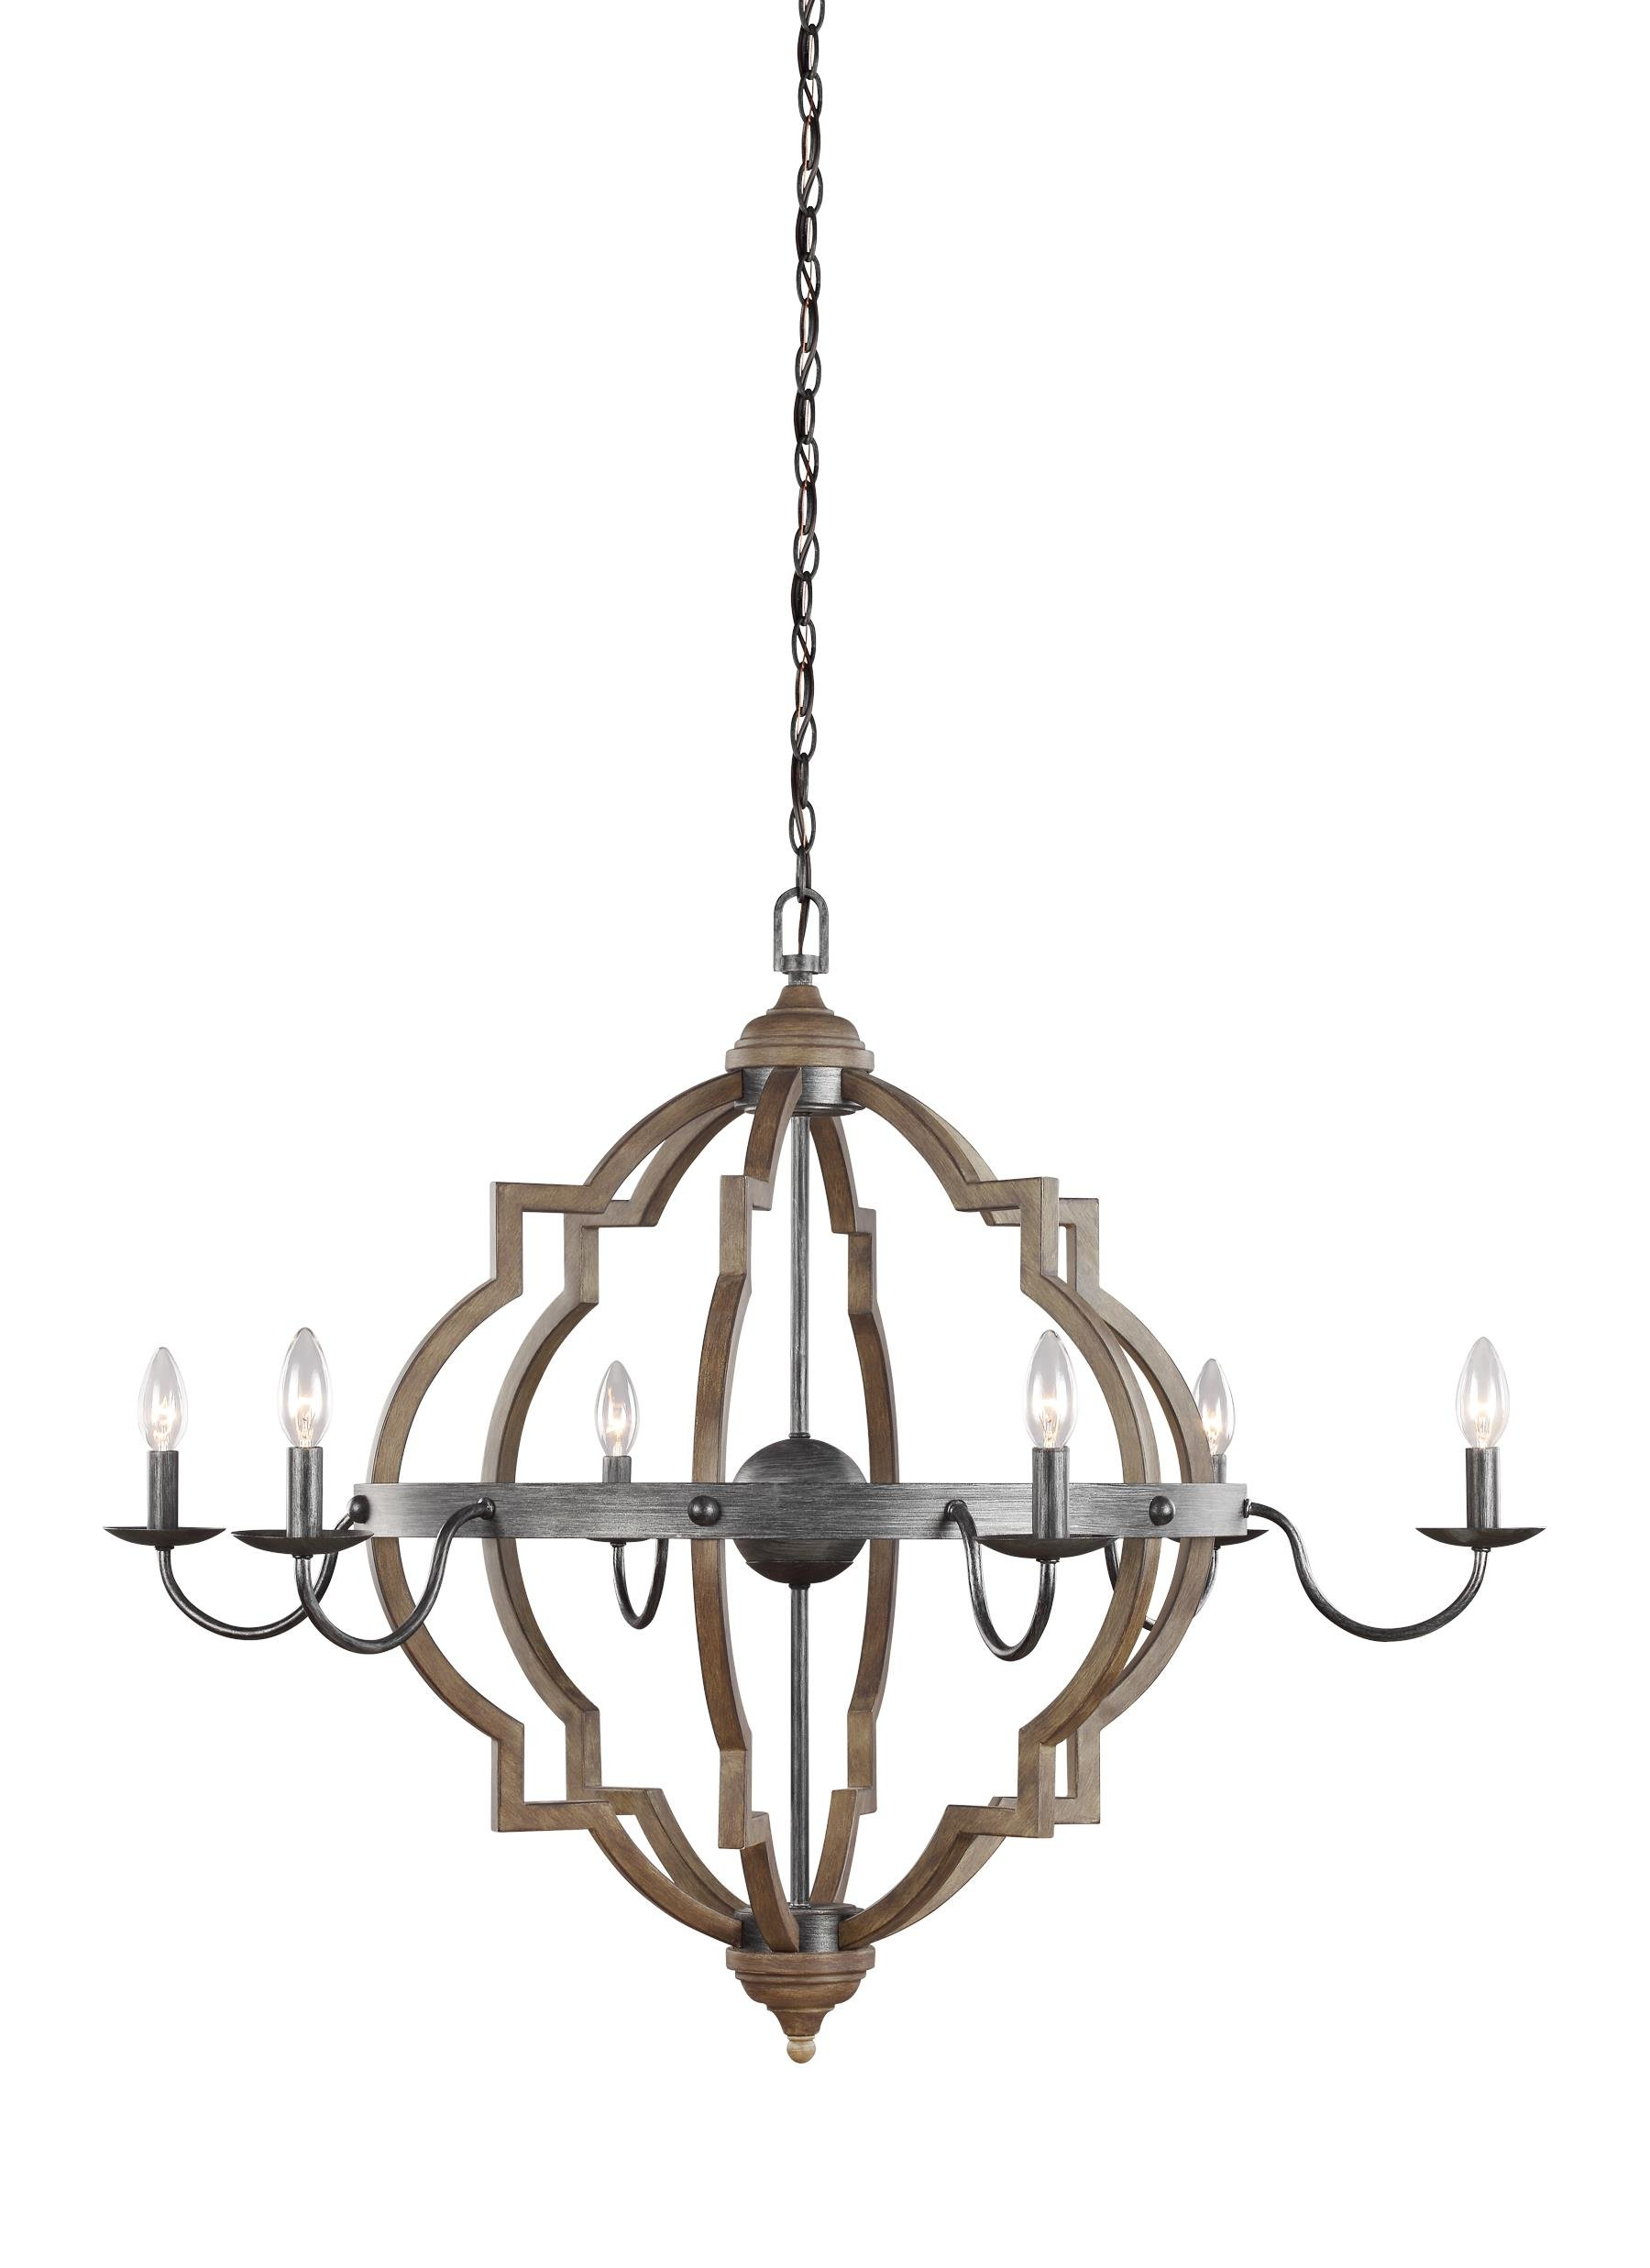 Hamza 6 Light Candle Style Chandeliers With Fashionable Donna 6 Light Candle Style Chandelier (Gallery 18 of 25)